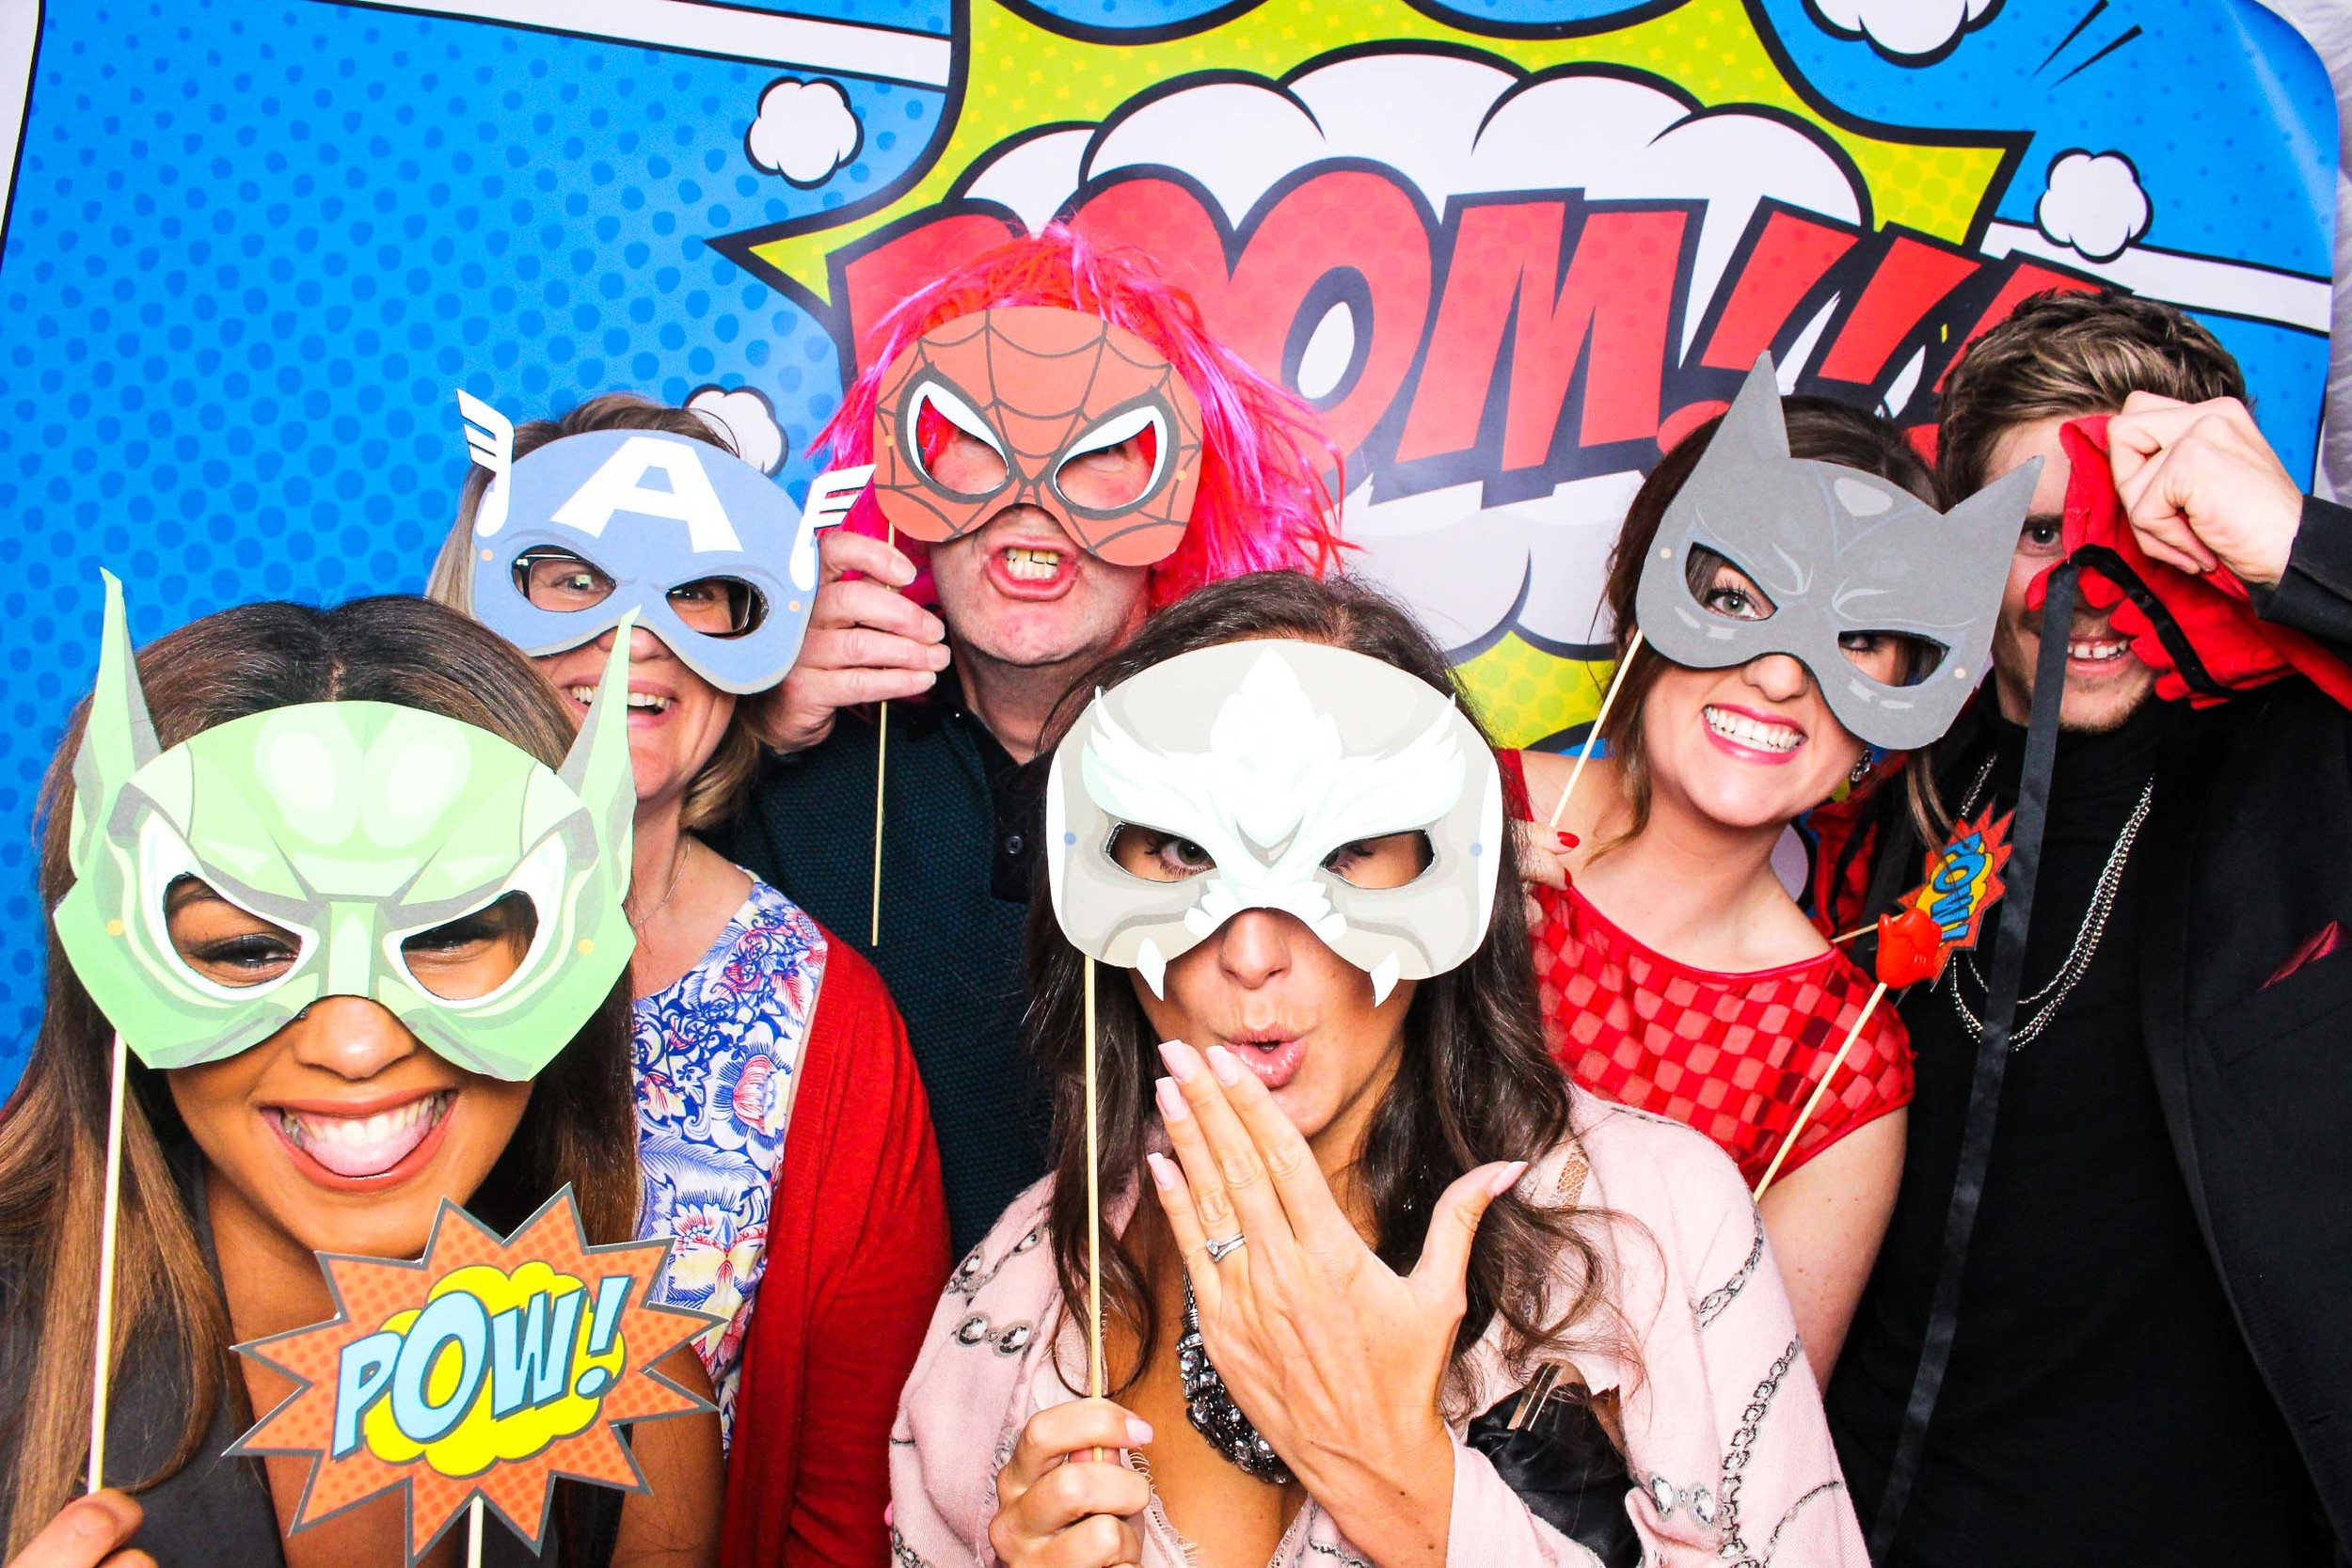 Fotoauto Photo Booth Hire - Shop Direct-12.jpg